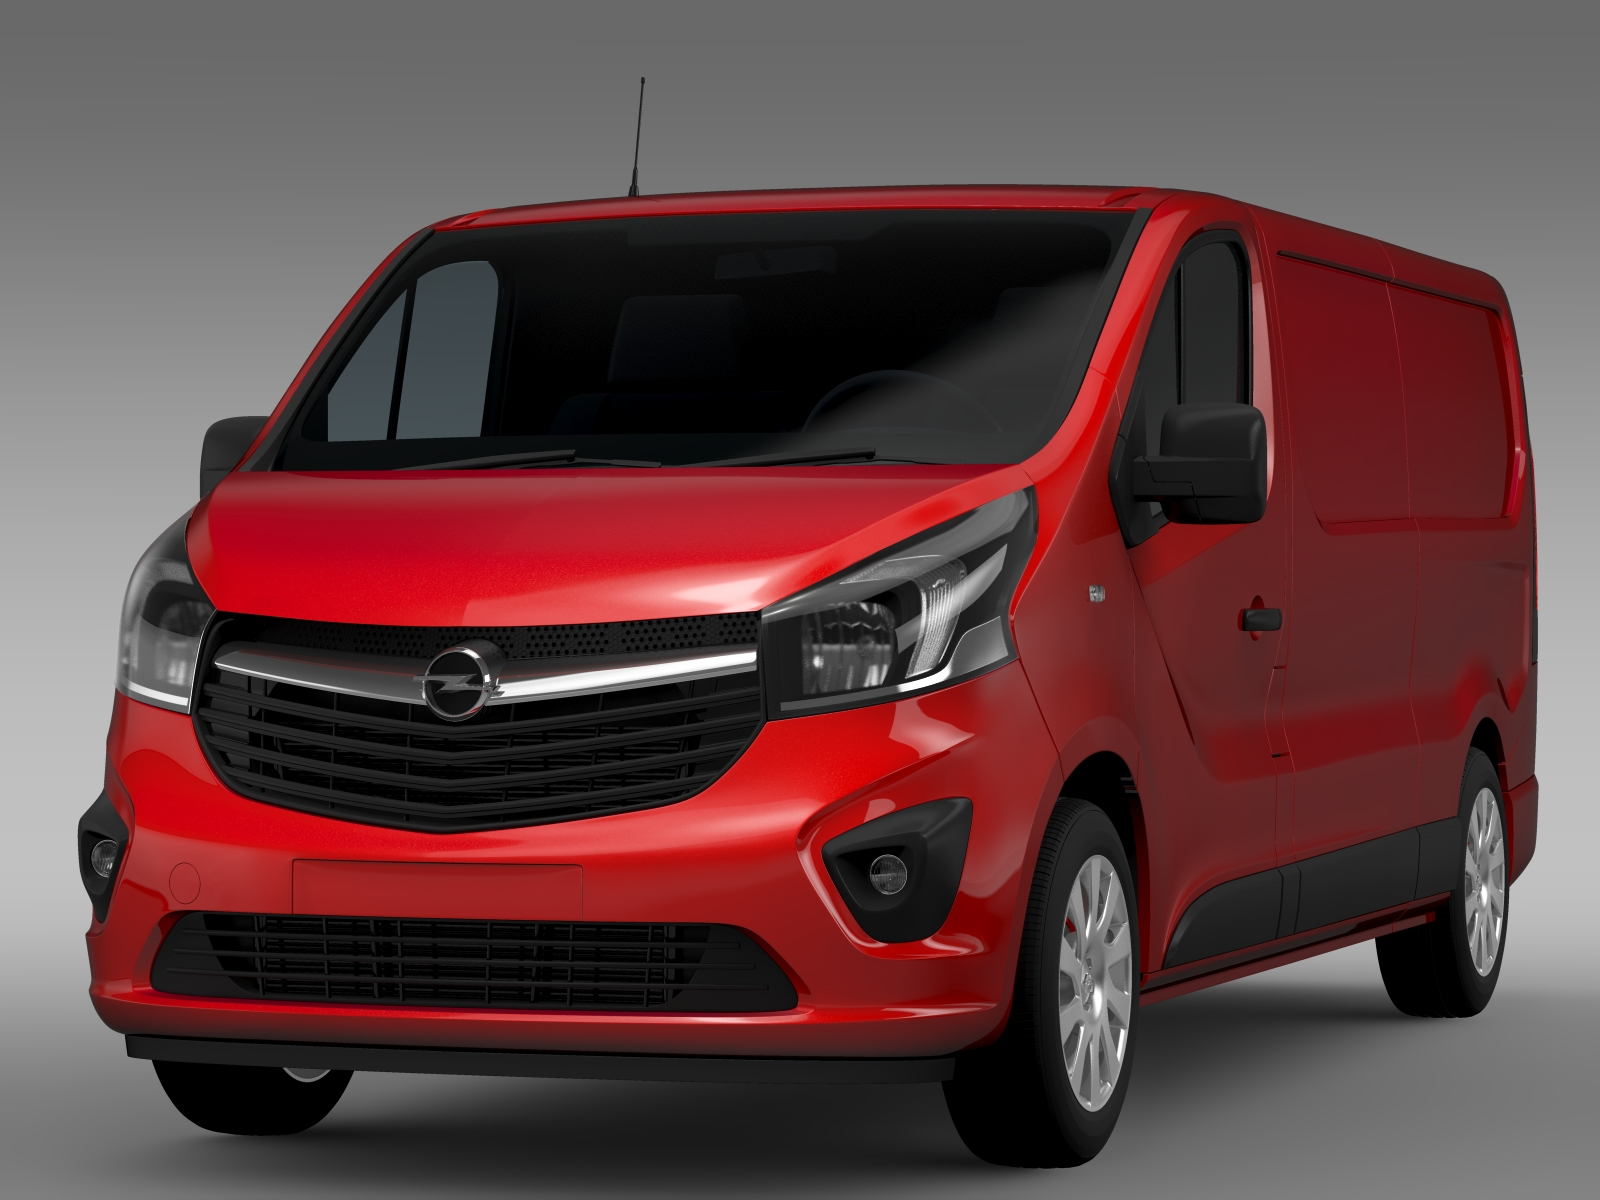 opel vivaro l2h1 lwb 2015 3d model buy opel vivaro l2h1 lwb 2015 3d model flatpyramid. Black Bedroom Furniture Sets. Home Design Ideas